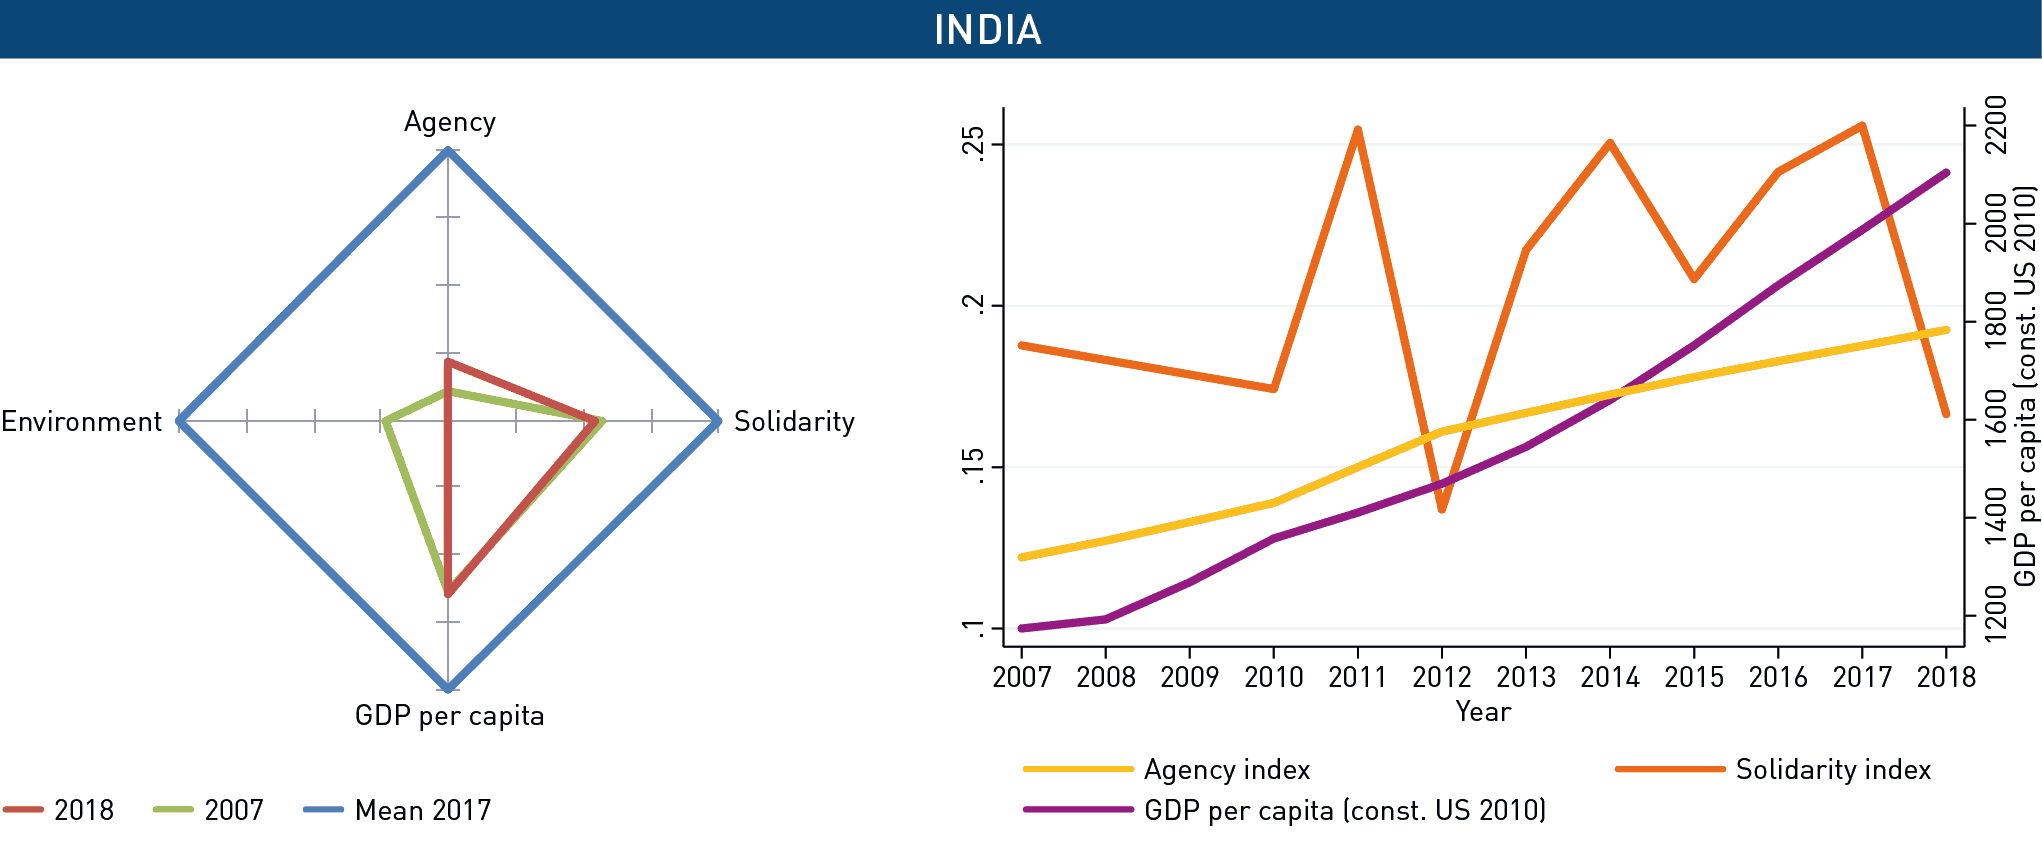 GSI_Recoupling-Dashboard_India